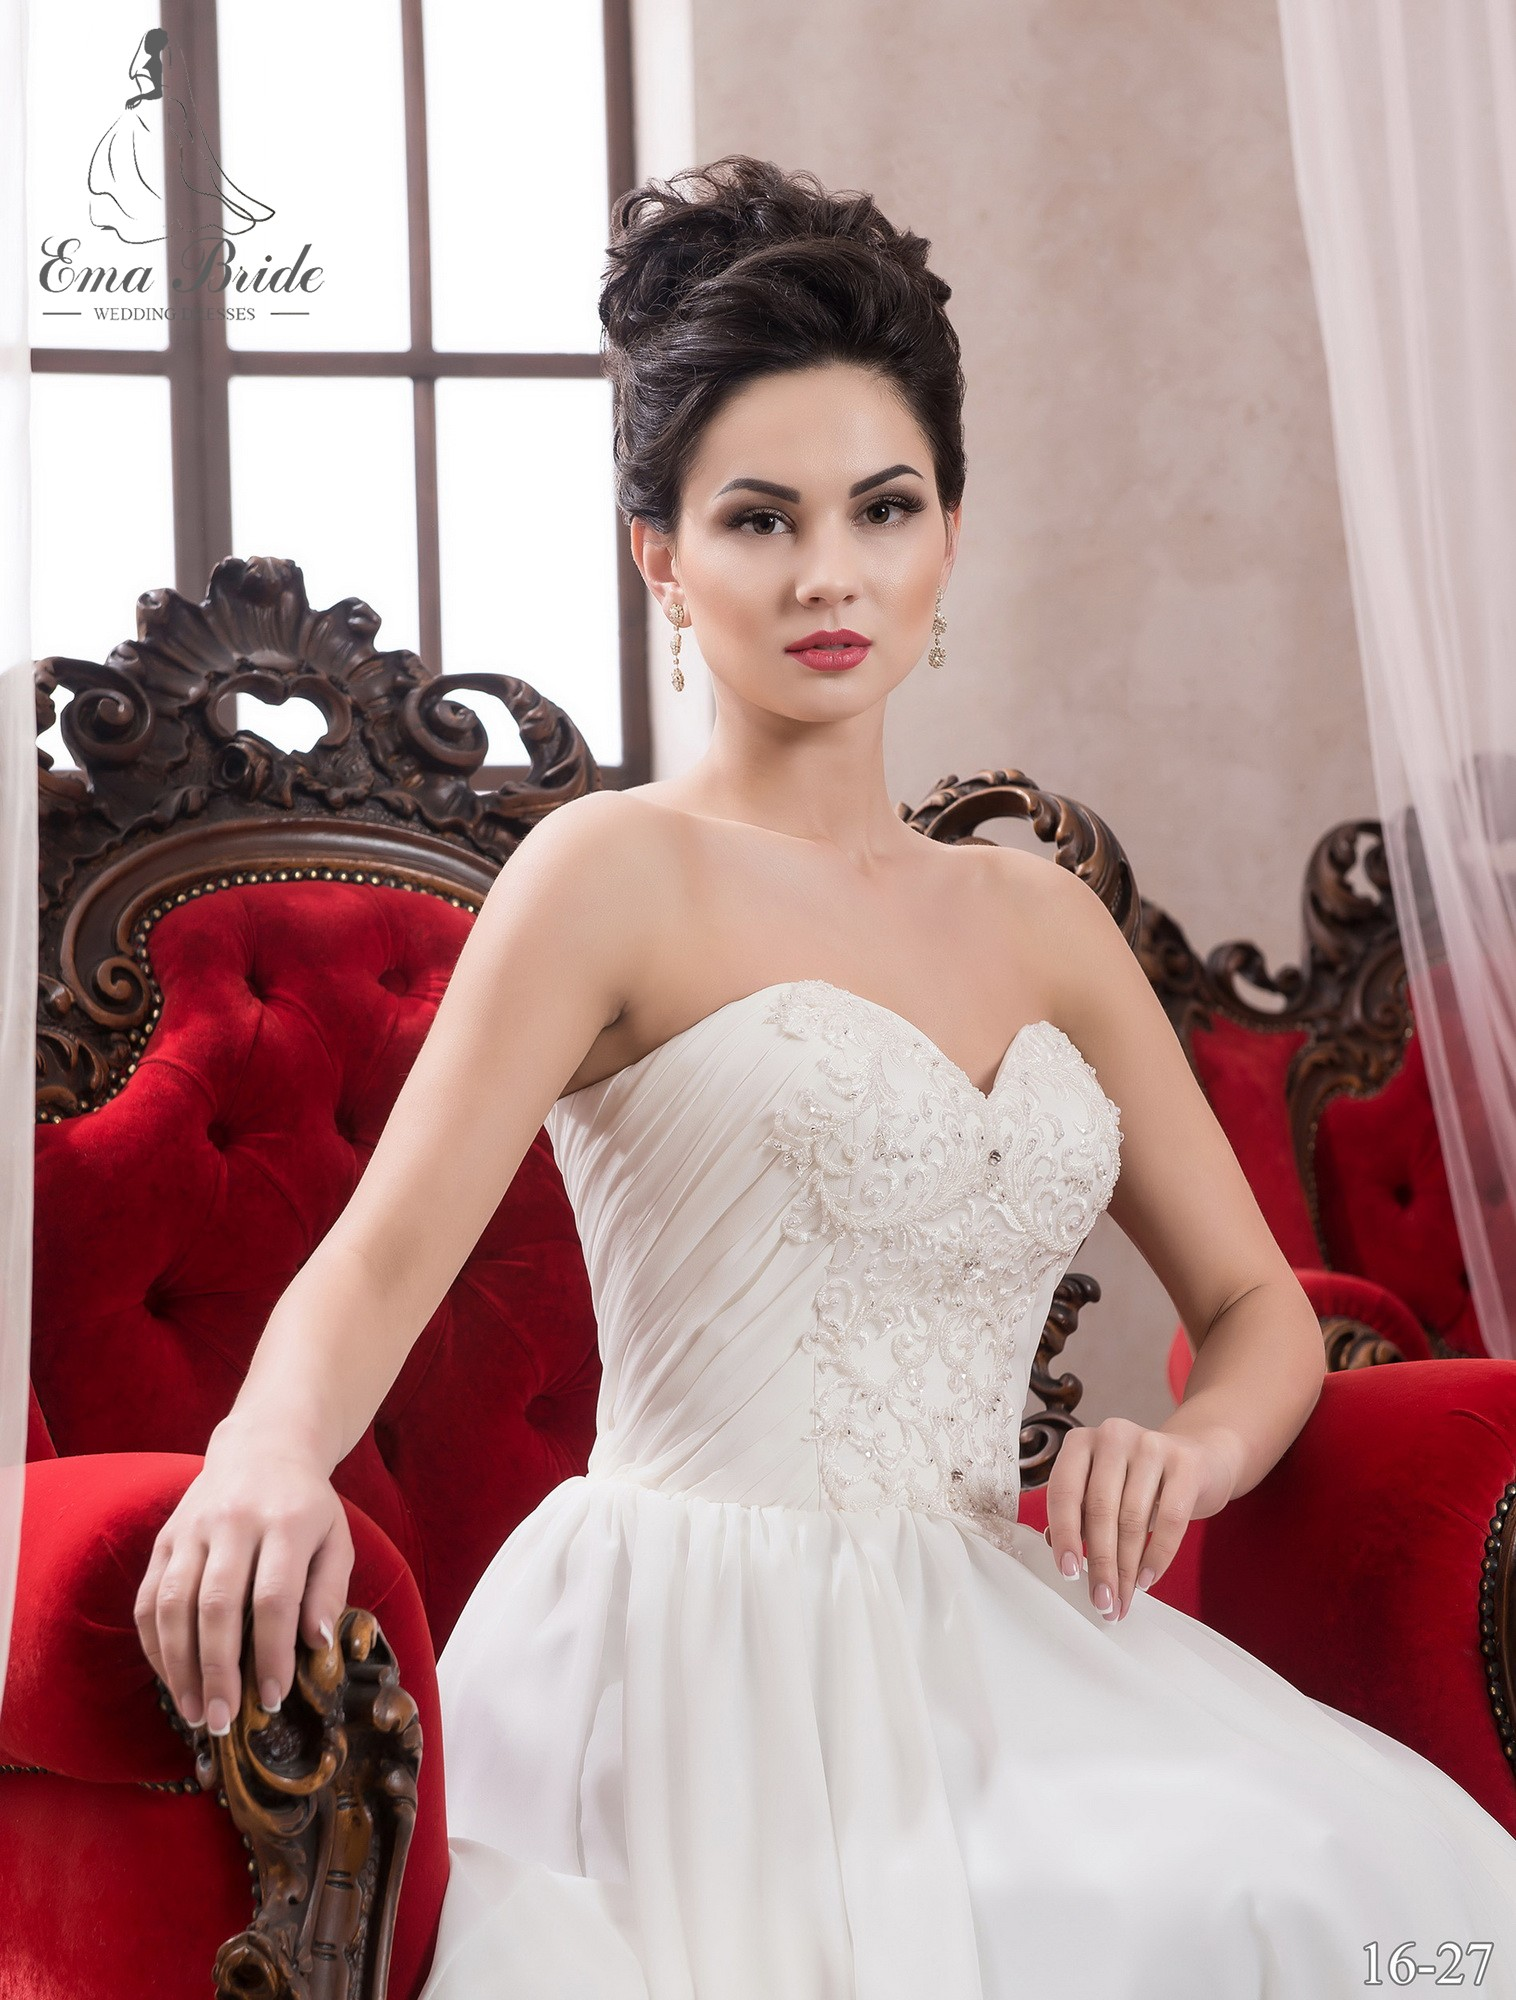 Wedding dress 16-27 wholesale